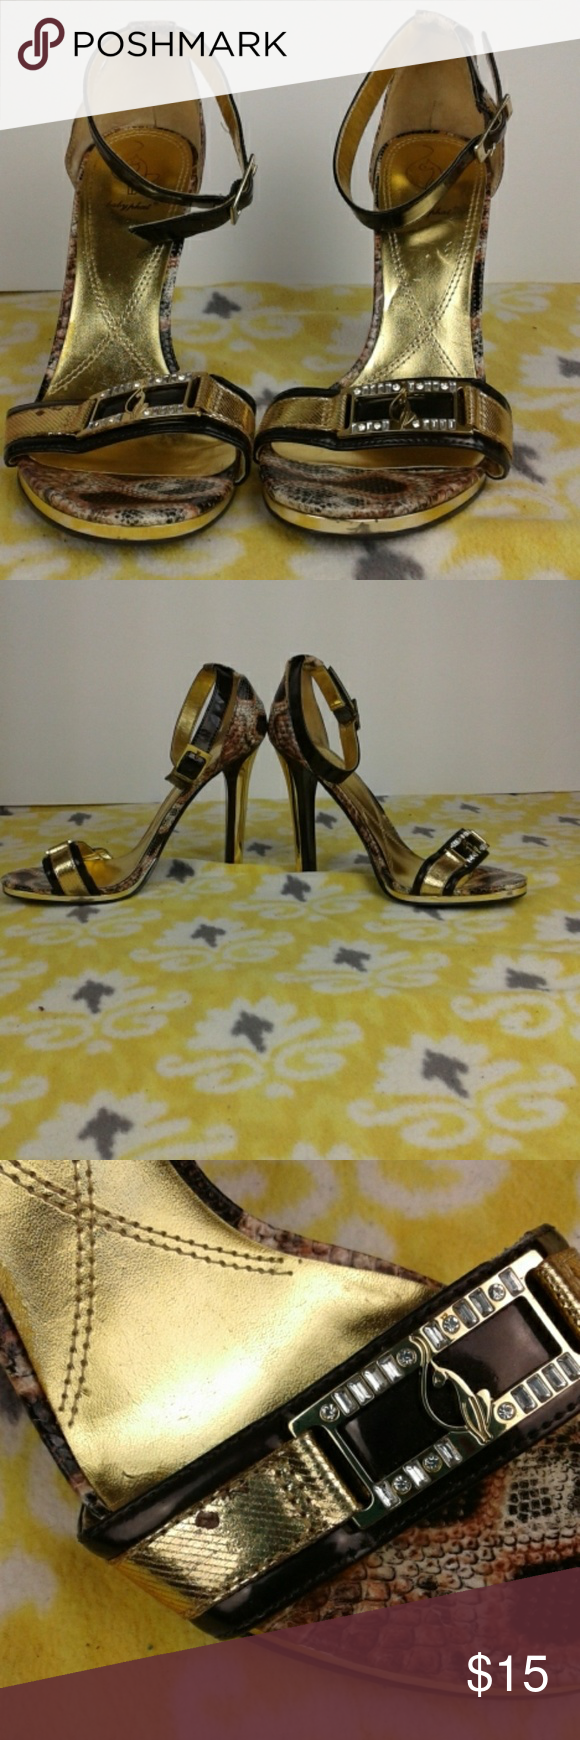 5781a33285d Spotted while shopping on Poshmark  Babyphat heels!  poshmark  fashion   shopping